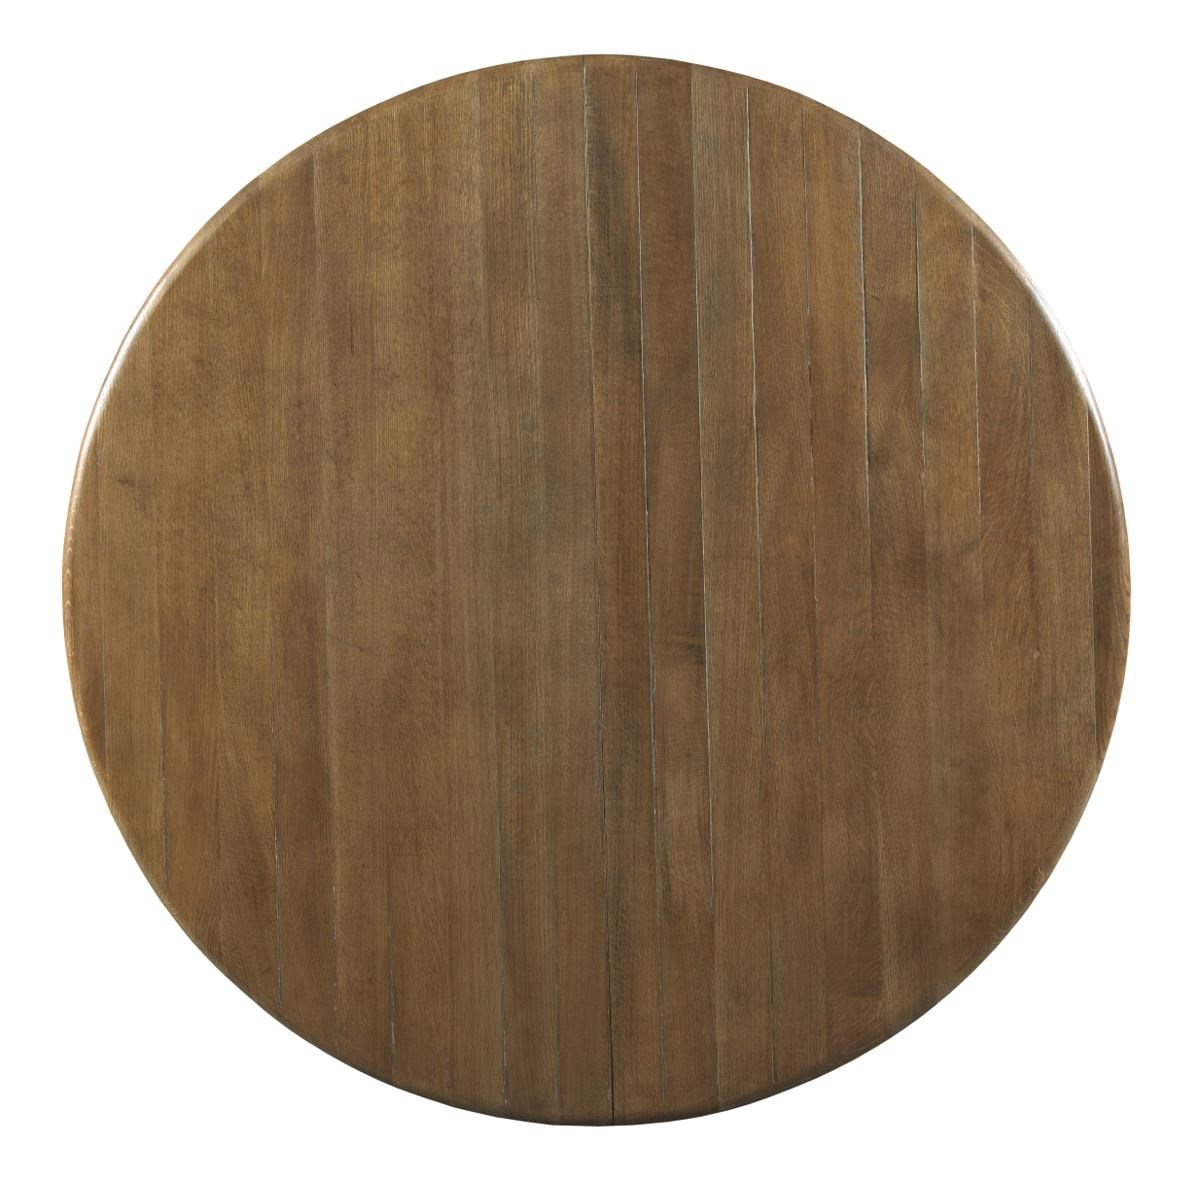 rustic round kitchen table Kincaid Furniture Stone Ridge Transitional Rustic Round Dining Table with One Extension Leaf Becker Furniture World Kitchen Tables